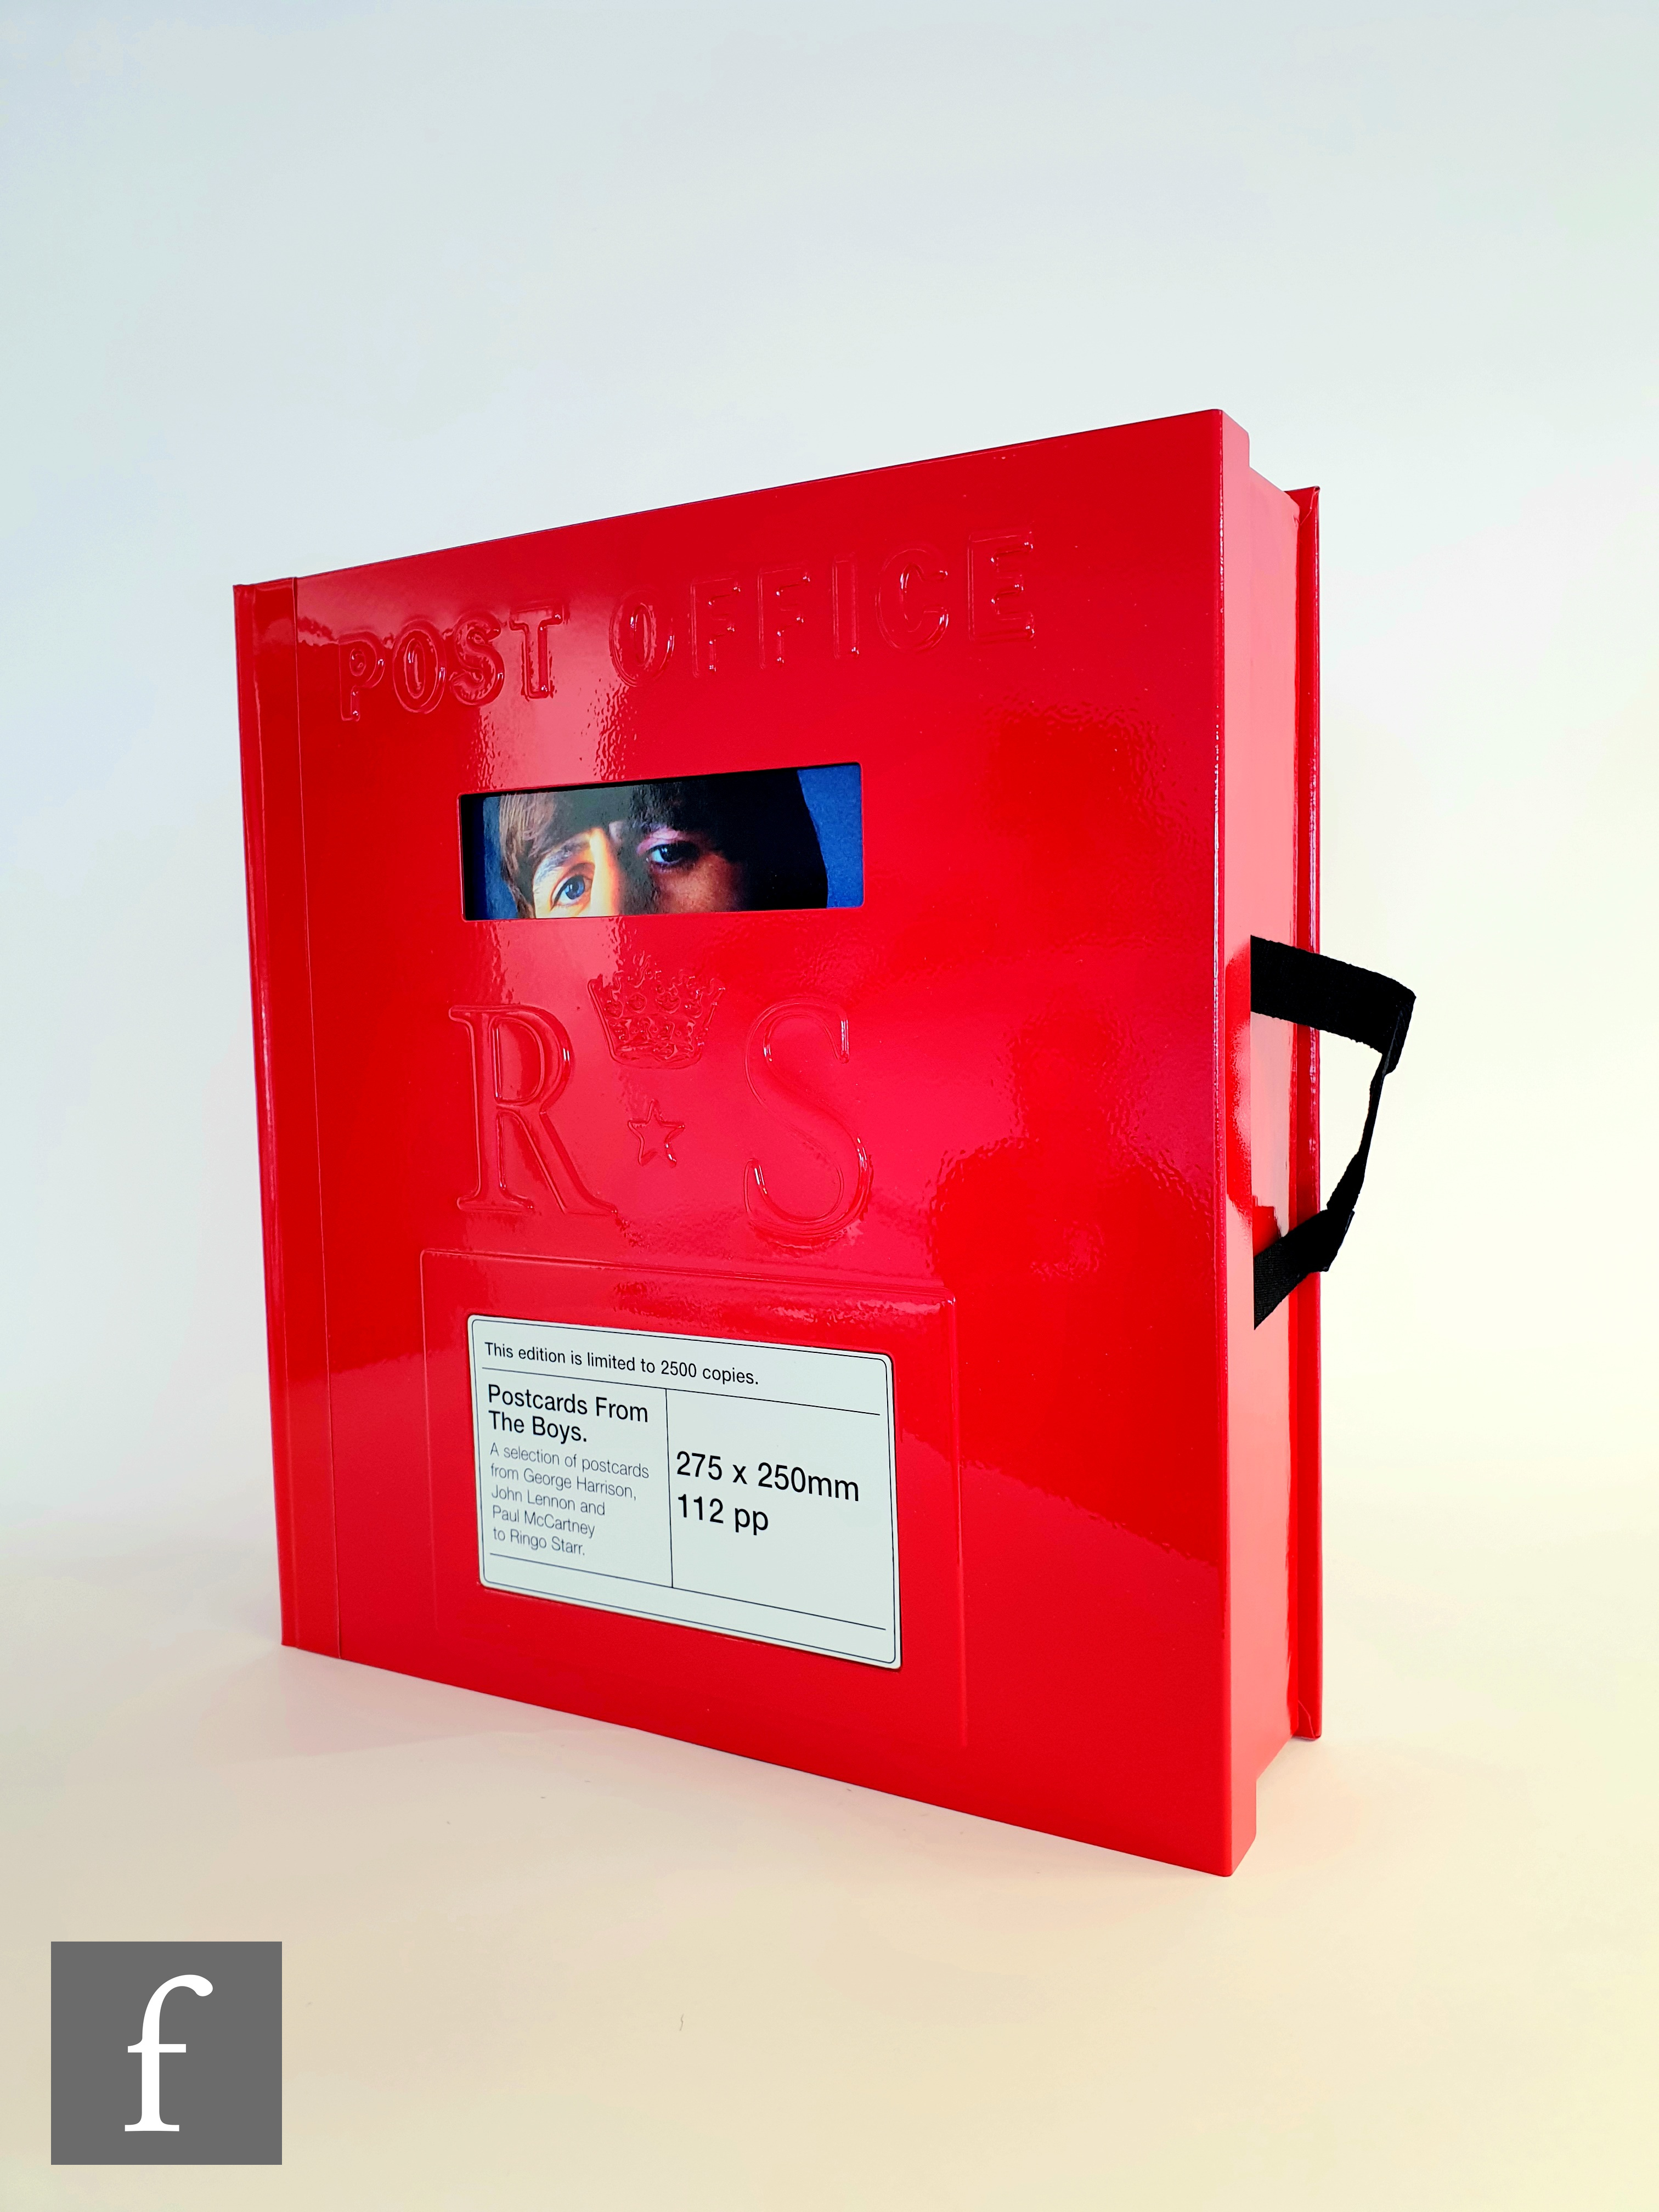 A limited edition Beatles 'Postcards from the boys', Genesis Publications, the metal red post box